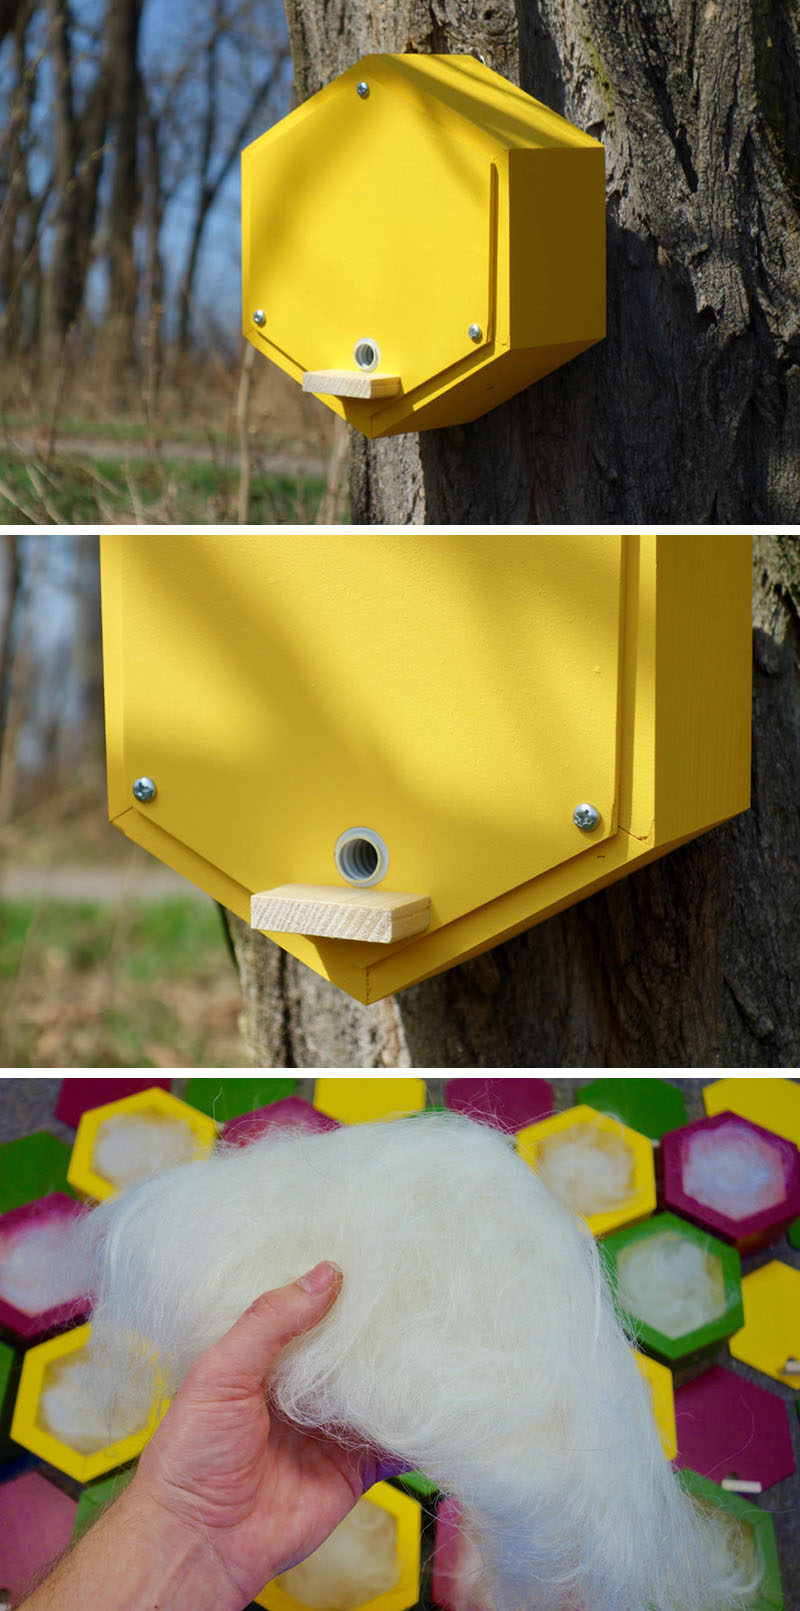 This BumbleBee House has been designed specifically for bumblebees as it has a built-in hallway that leads to an interior filled with wool where the bee can create its home. #BeeHotel #Design #Garden #Bees